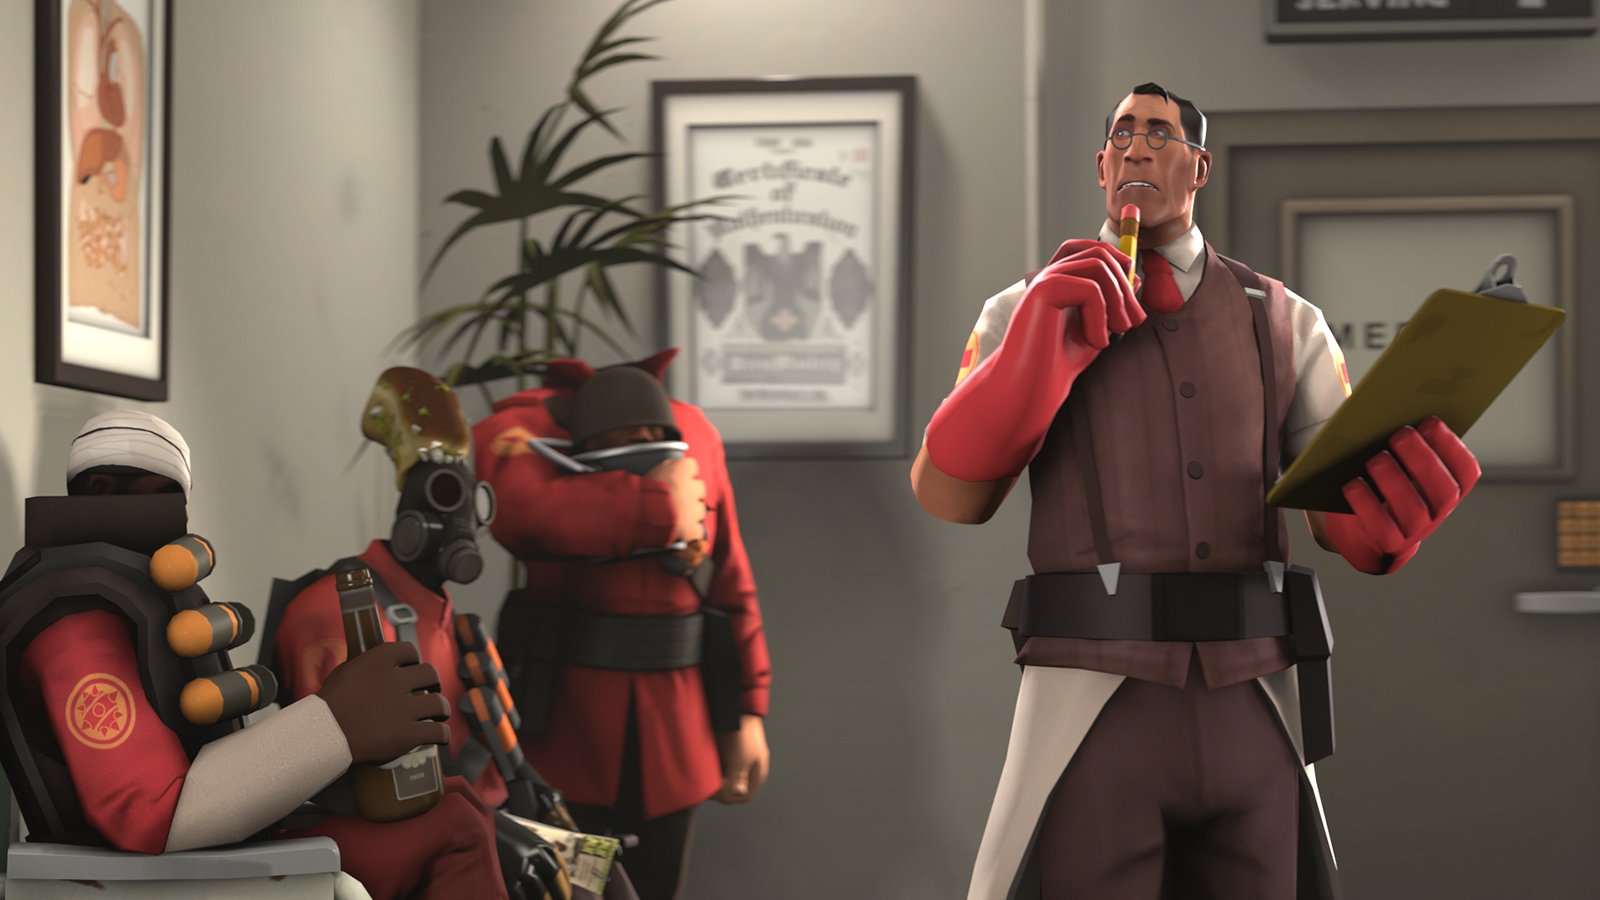 Pin by Whiteheron55 on This is Team fortress 2 in 2020